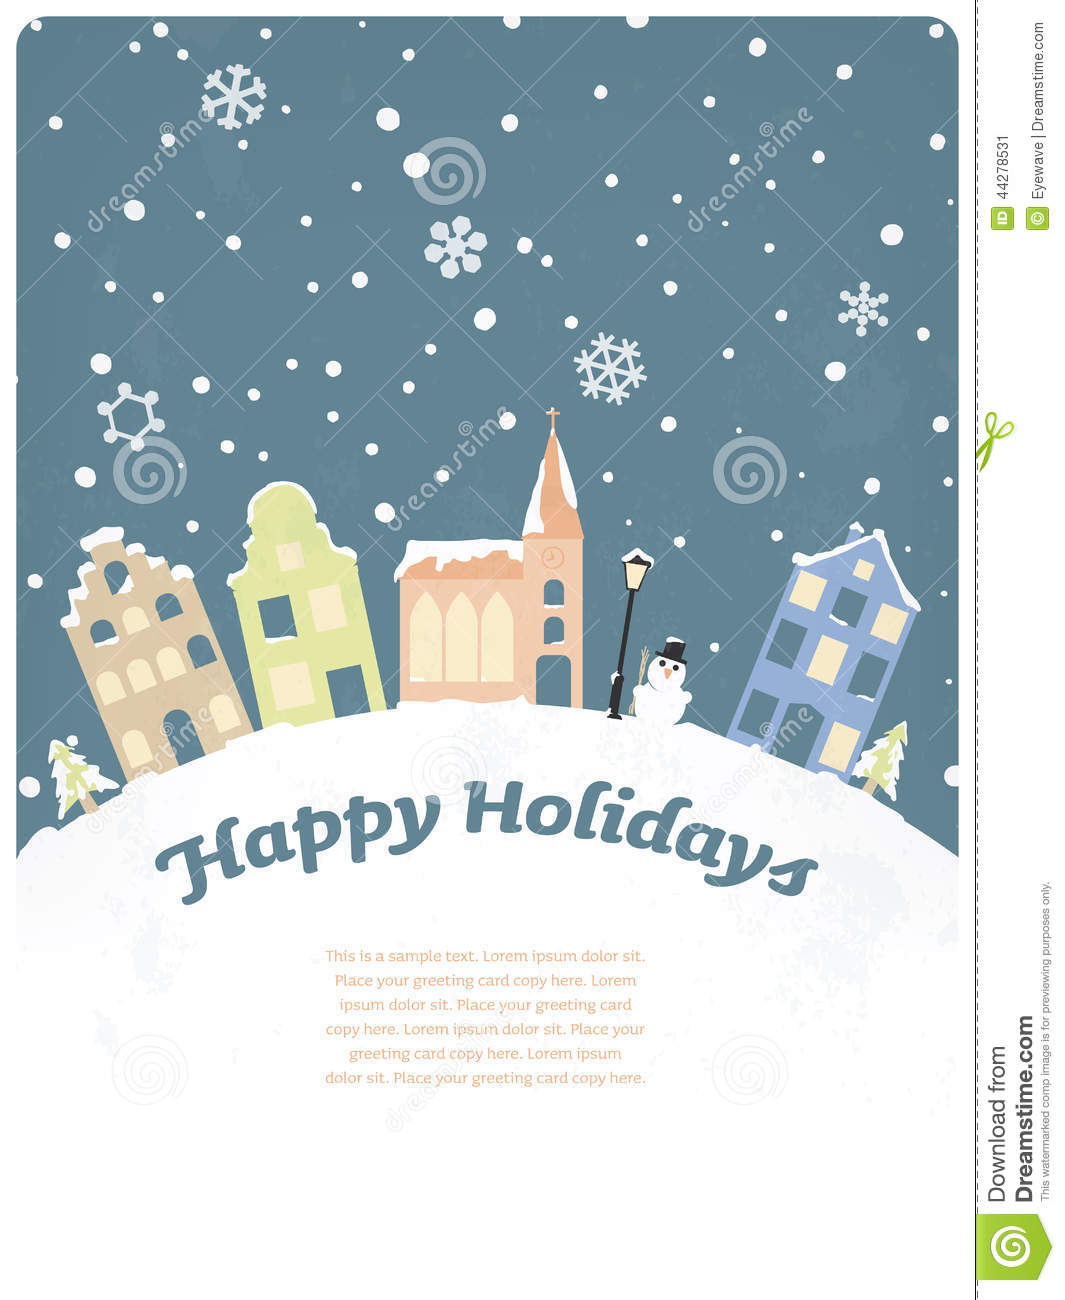 17 Happy Holidays Greeting Card Vector Images